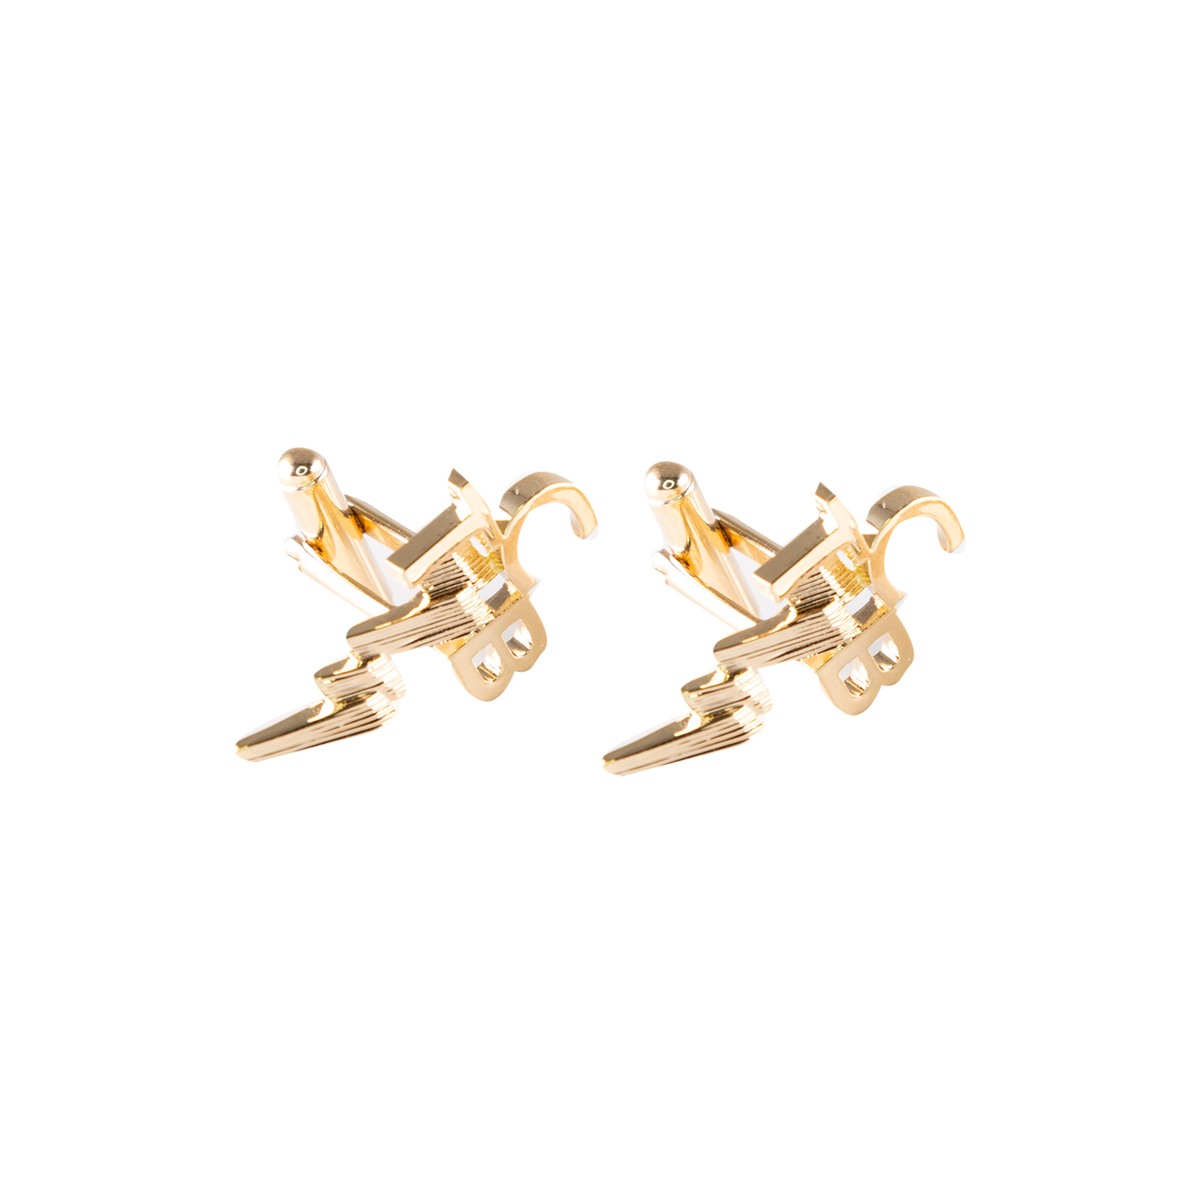 Lowell Hays 18K Gold TCB Cuff Links